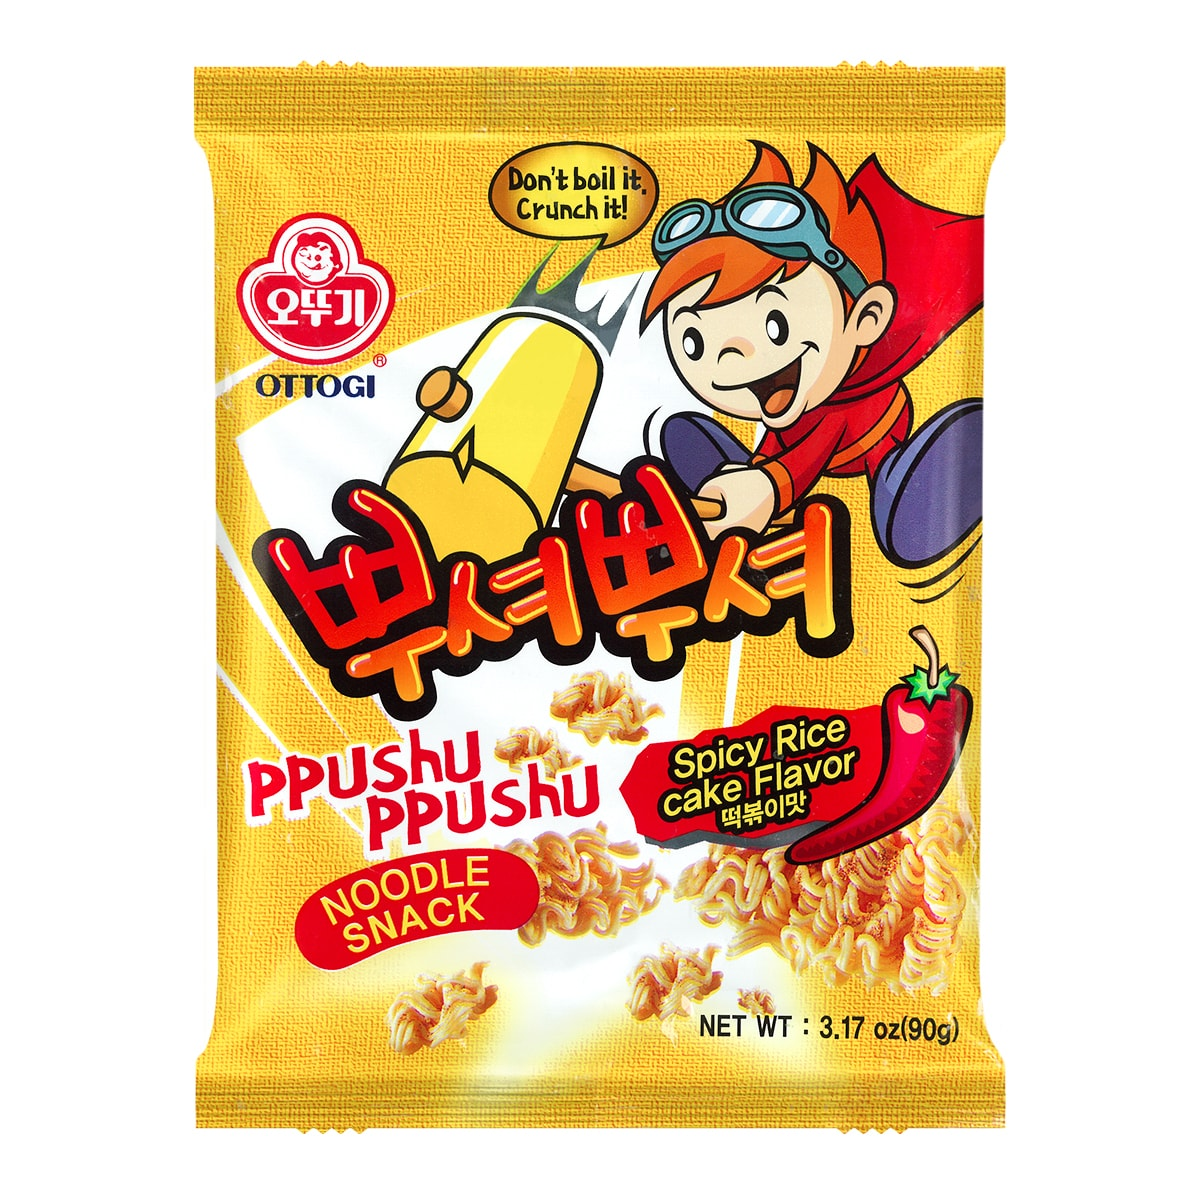 OTTOGI Ppushu Ppushu Noodle Snack Spicy Rice Cake Flavor 90g